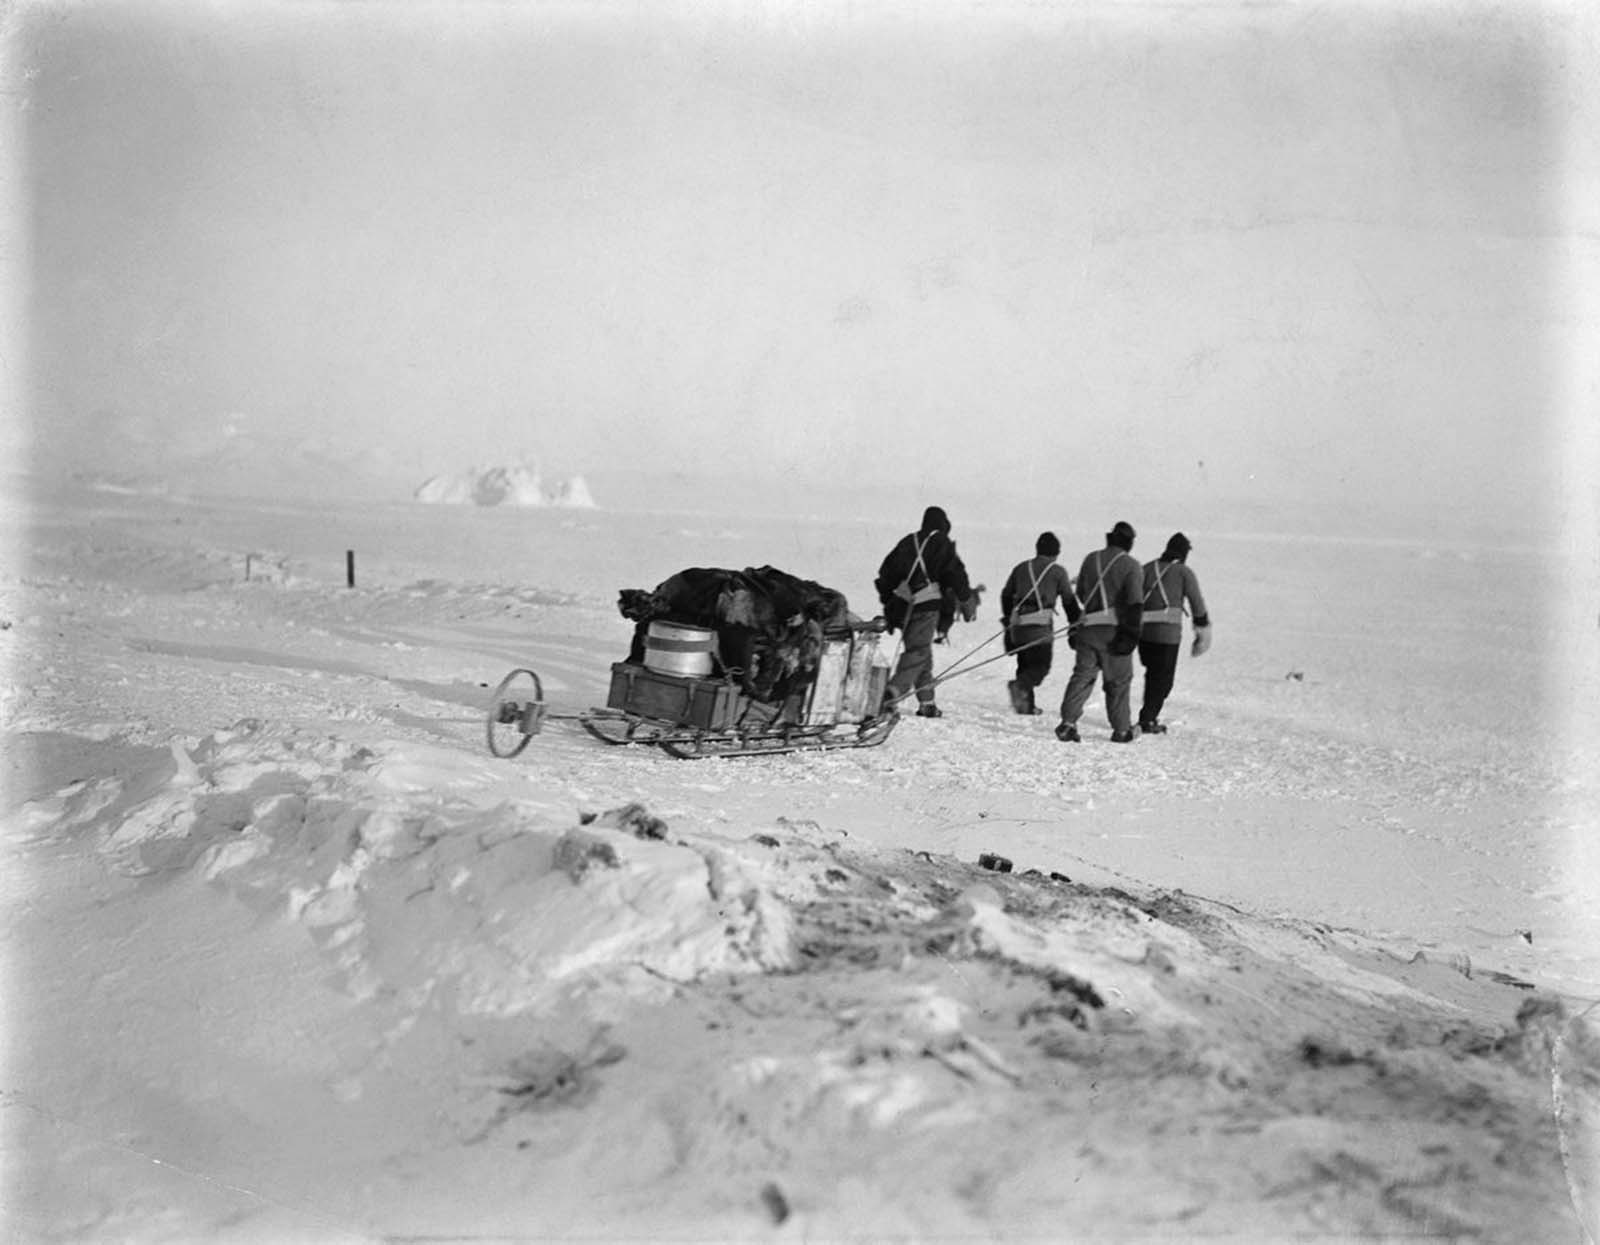 A sledging party. 1912.